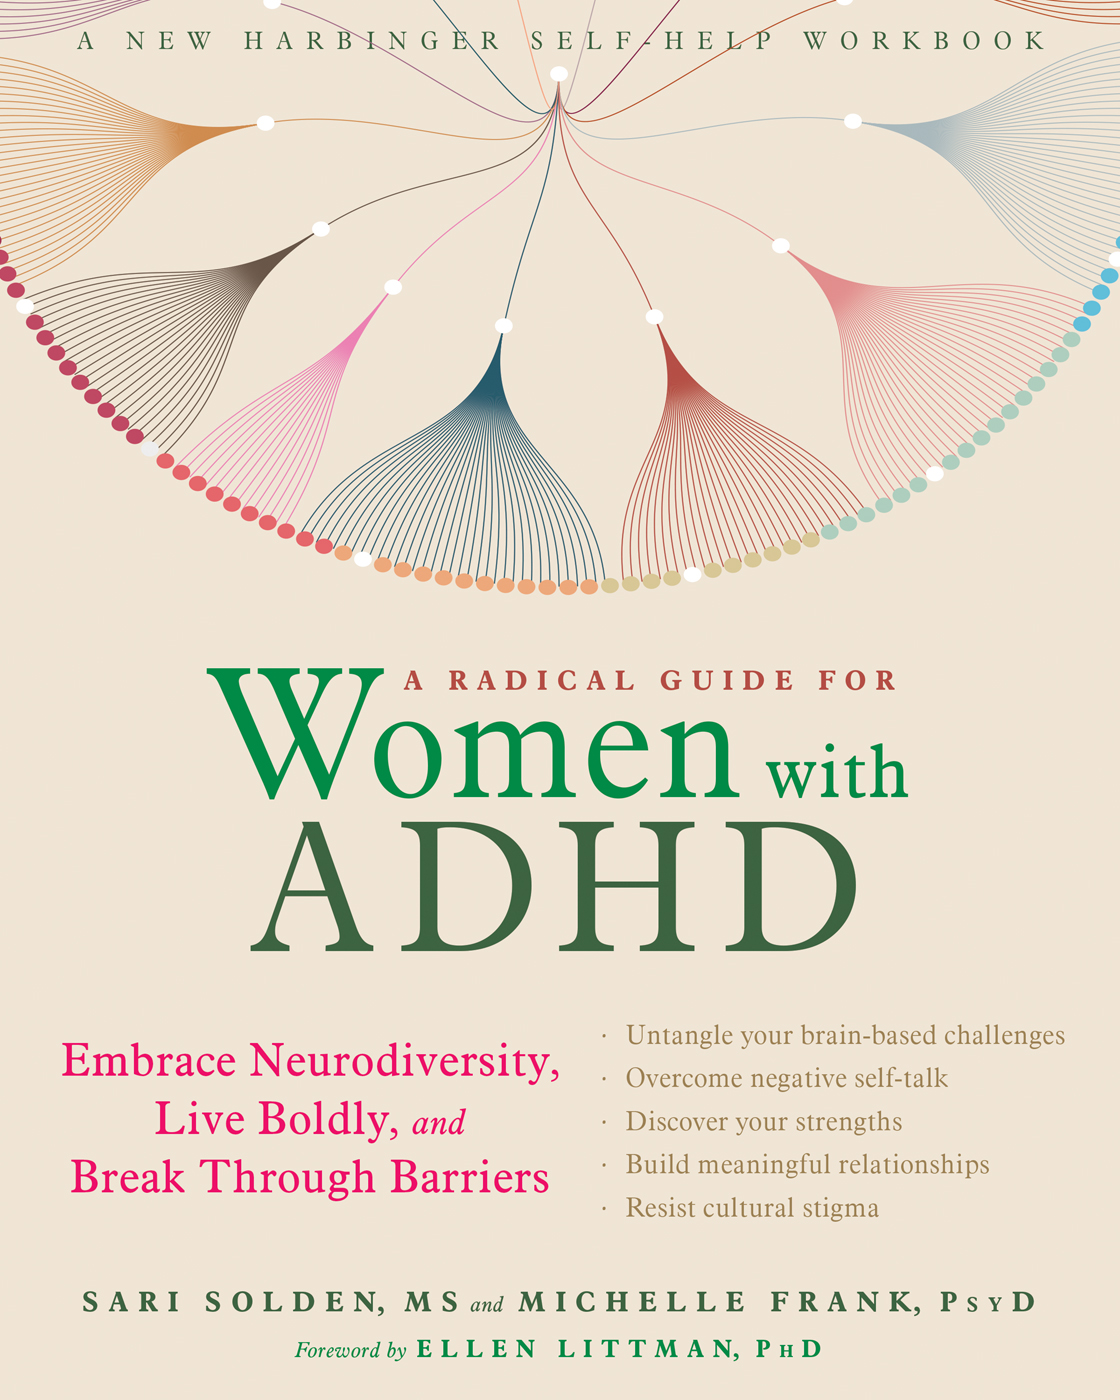 A Radical Guide for Women with ADHD